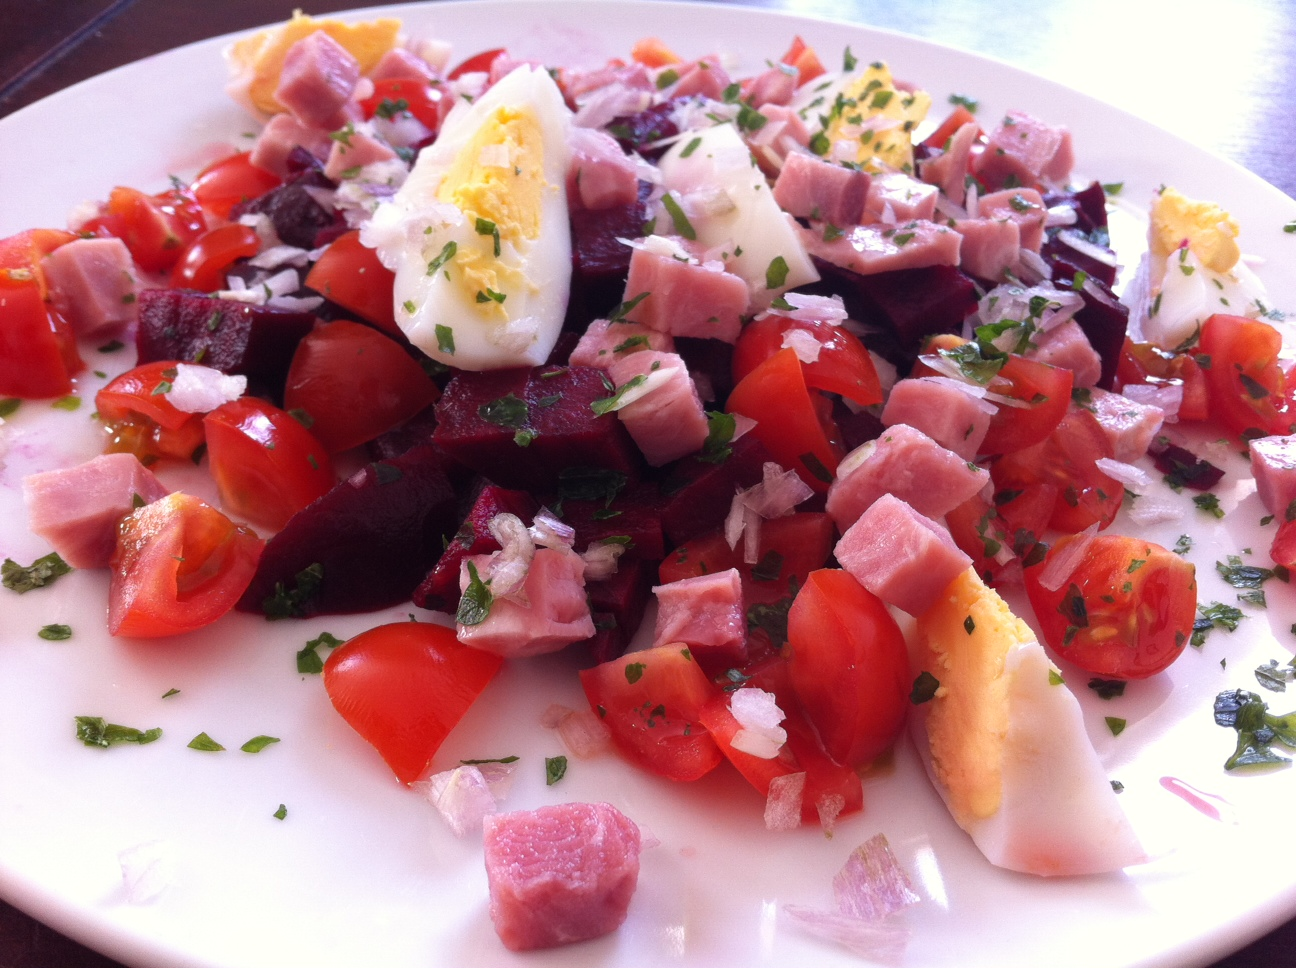 Salade gourmande aux betteraves rouges | La Cuisine de Stephy